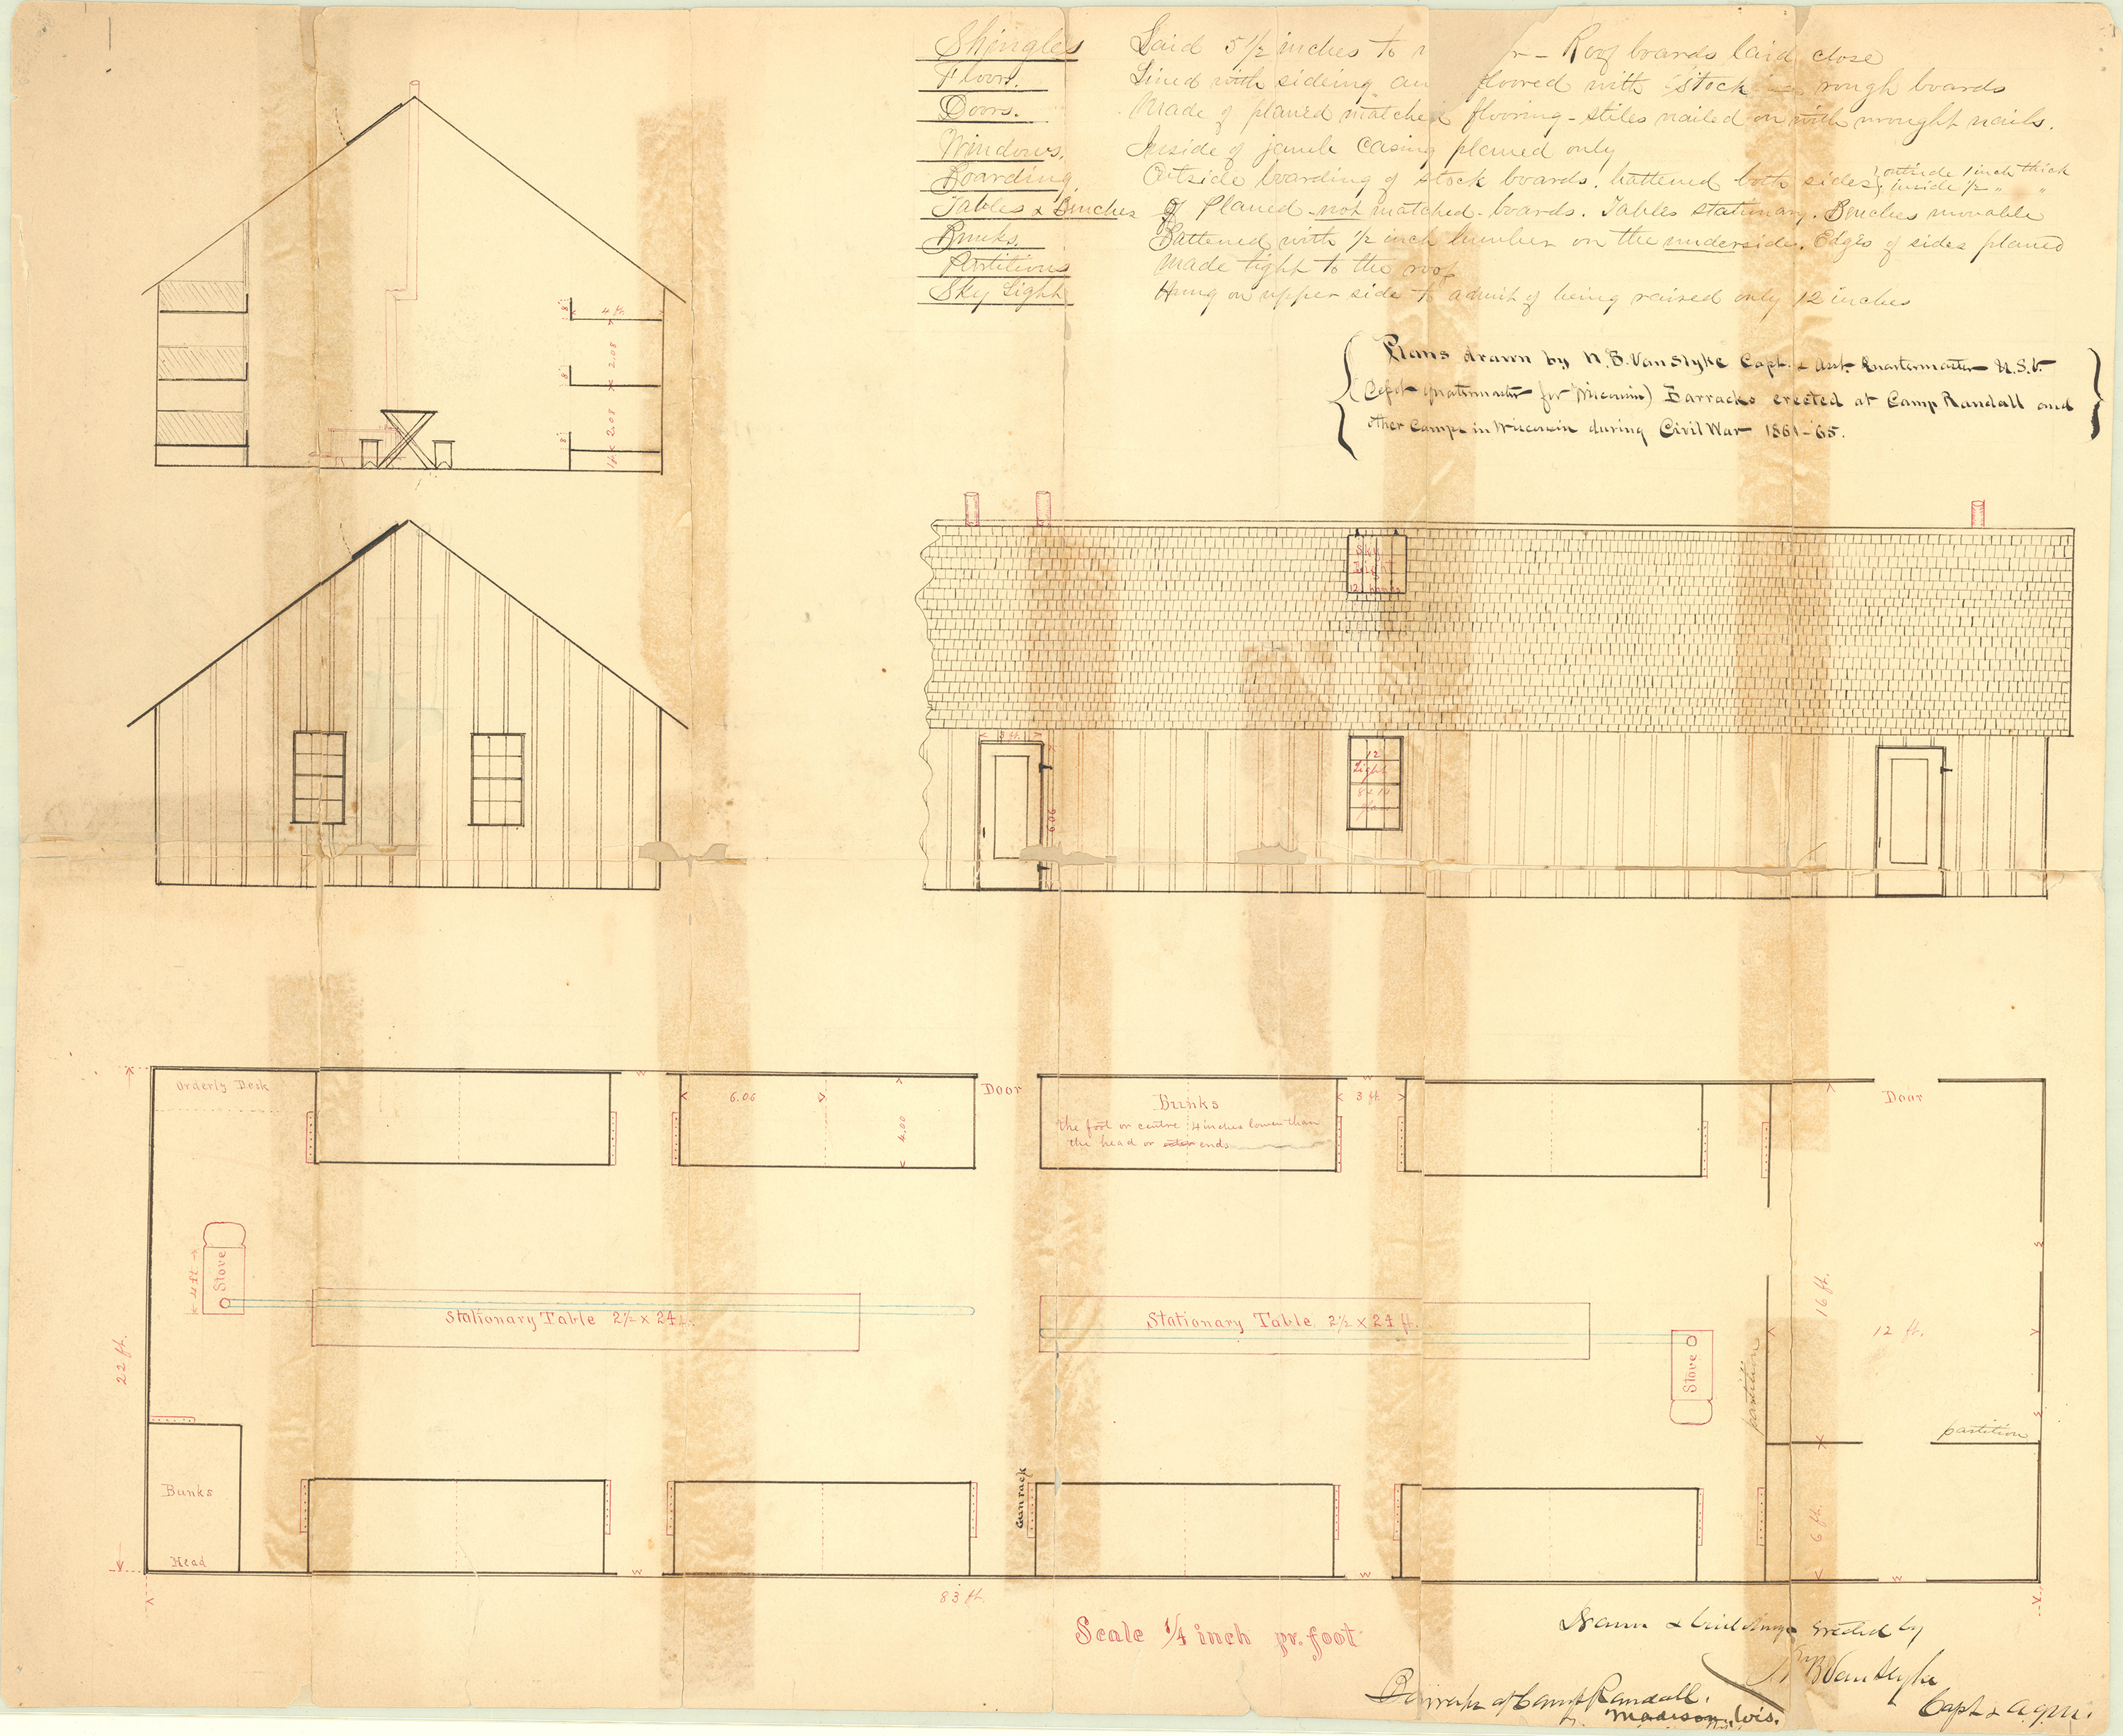 Original construction and floor plans, drawn by Napoleon Bonaparte Van Slyke, for the barracks constructed at Camp Randall during the Civil War. The drawing shows the dimensions of the barracks and layout of bunks, gun racks, stoves, and tables within, and information about materials to use.